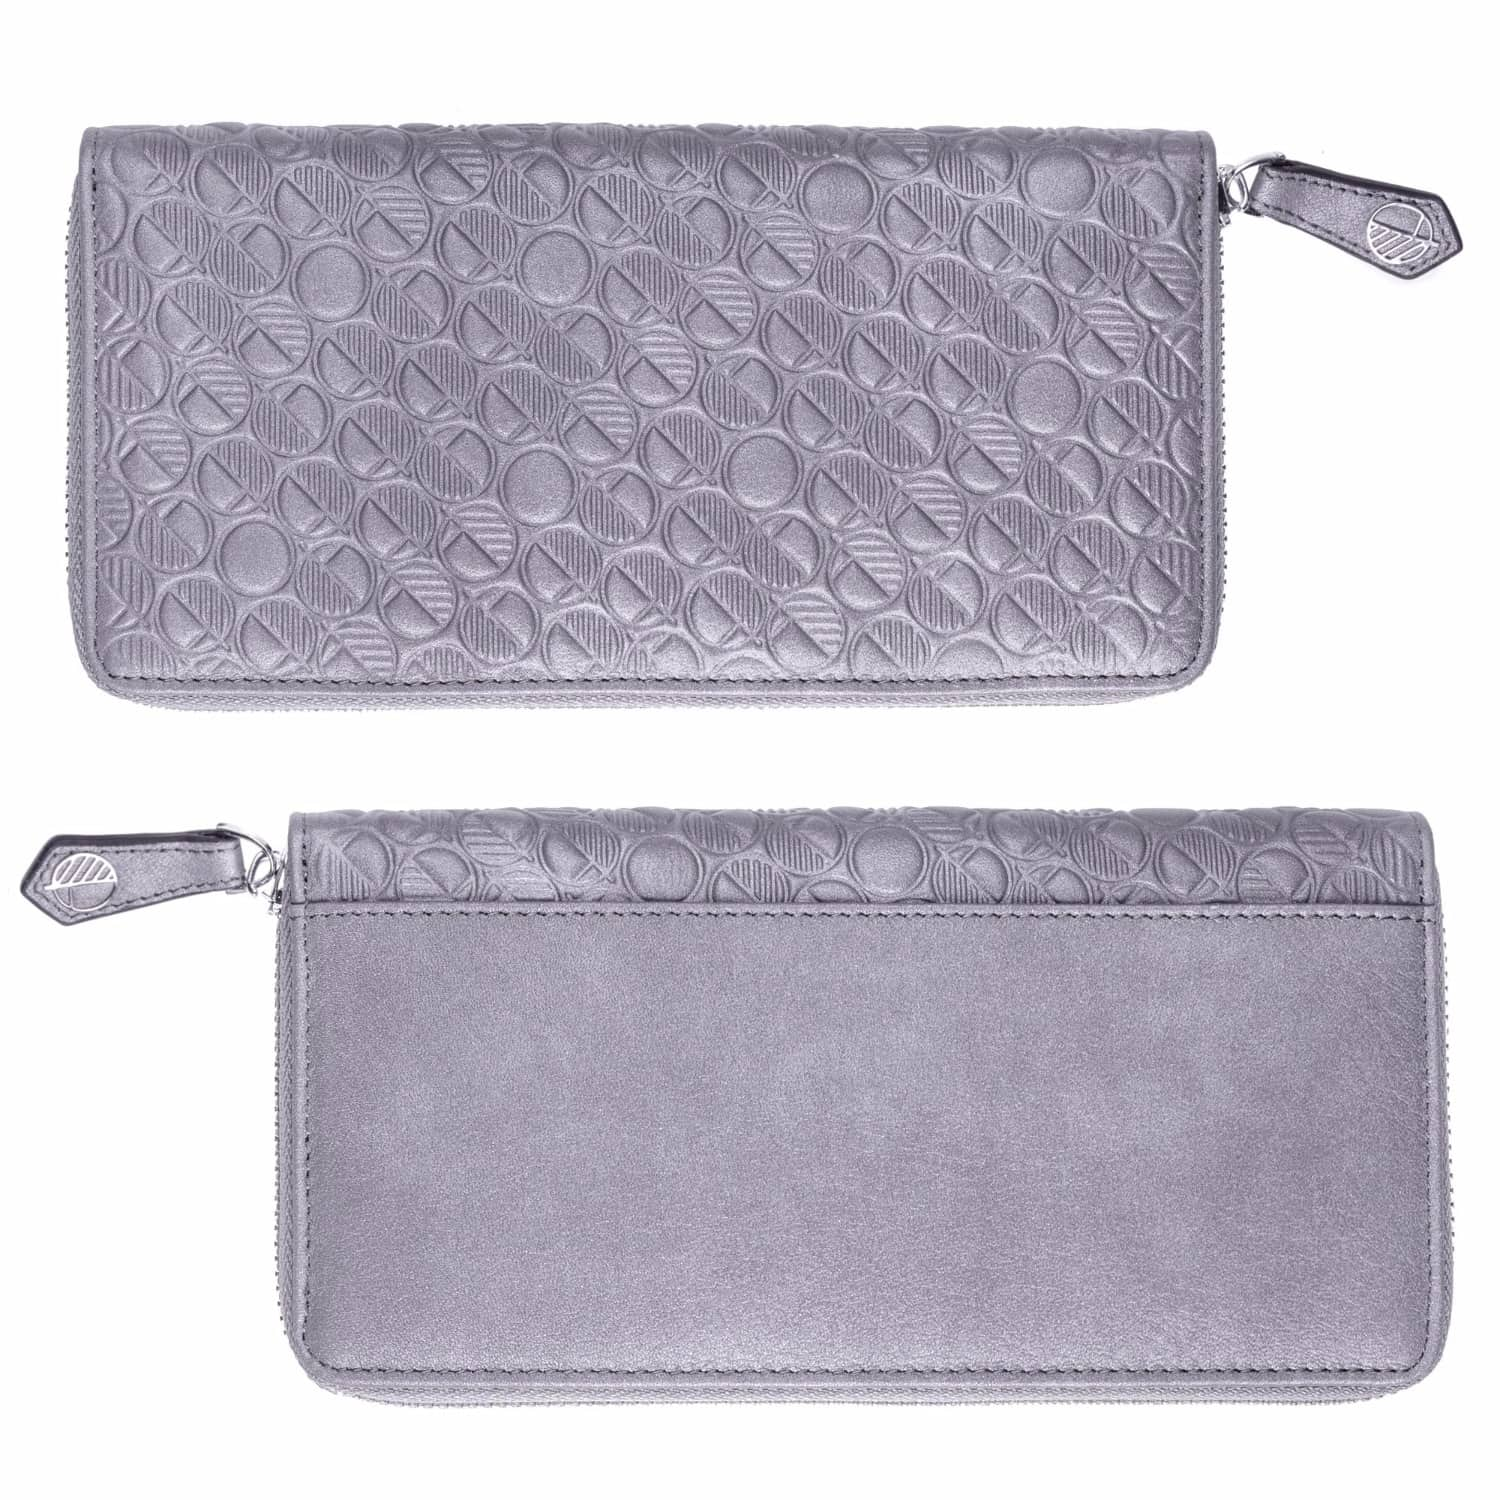 e1f0ab7b0134 Luxury English Leather Ladies 12 Card Zip Around Purse   Wallet in Silver  image